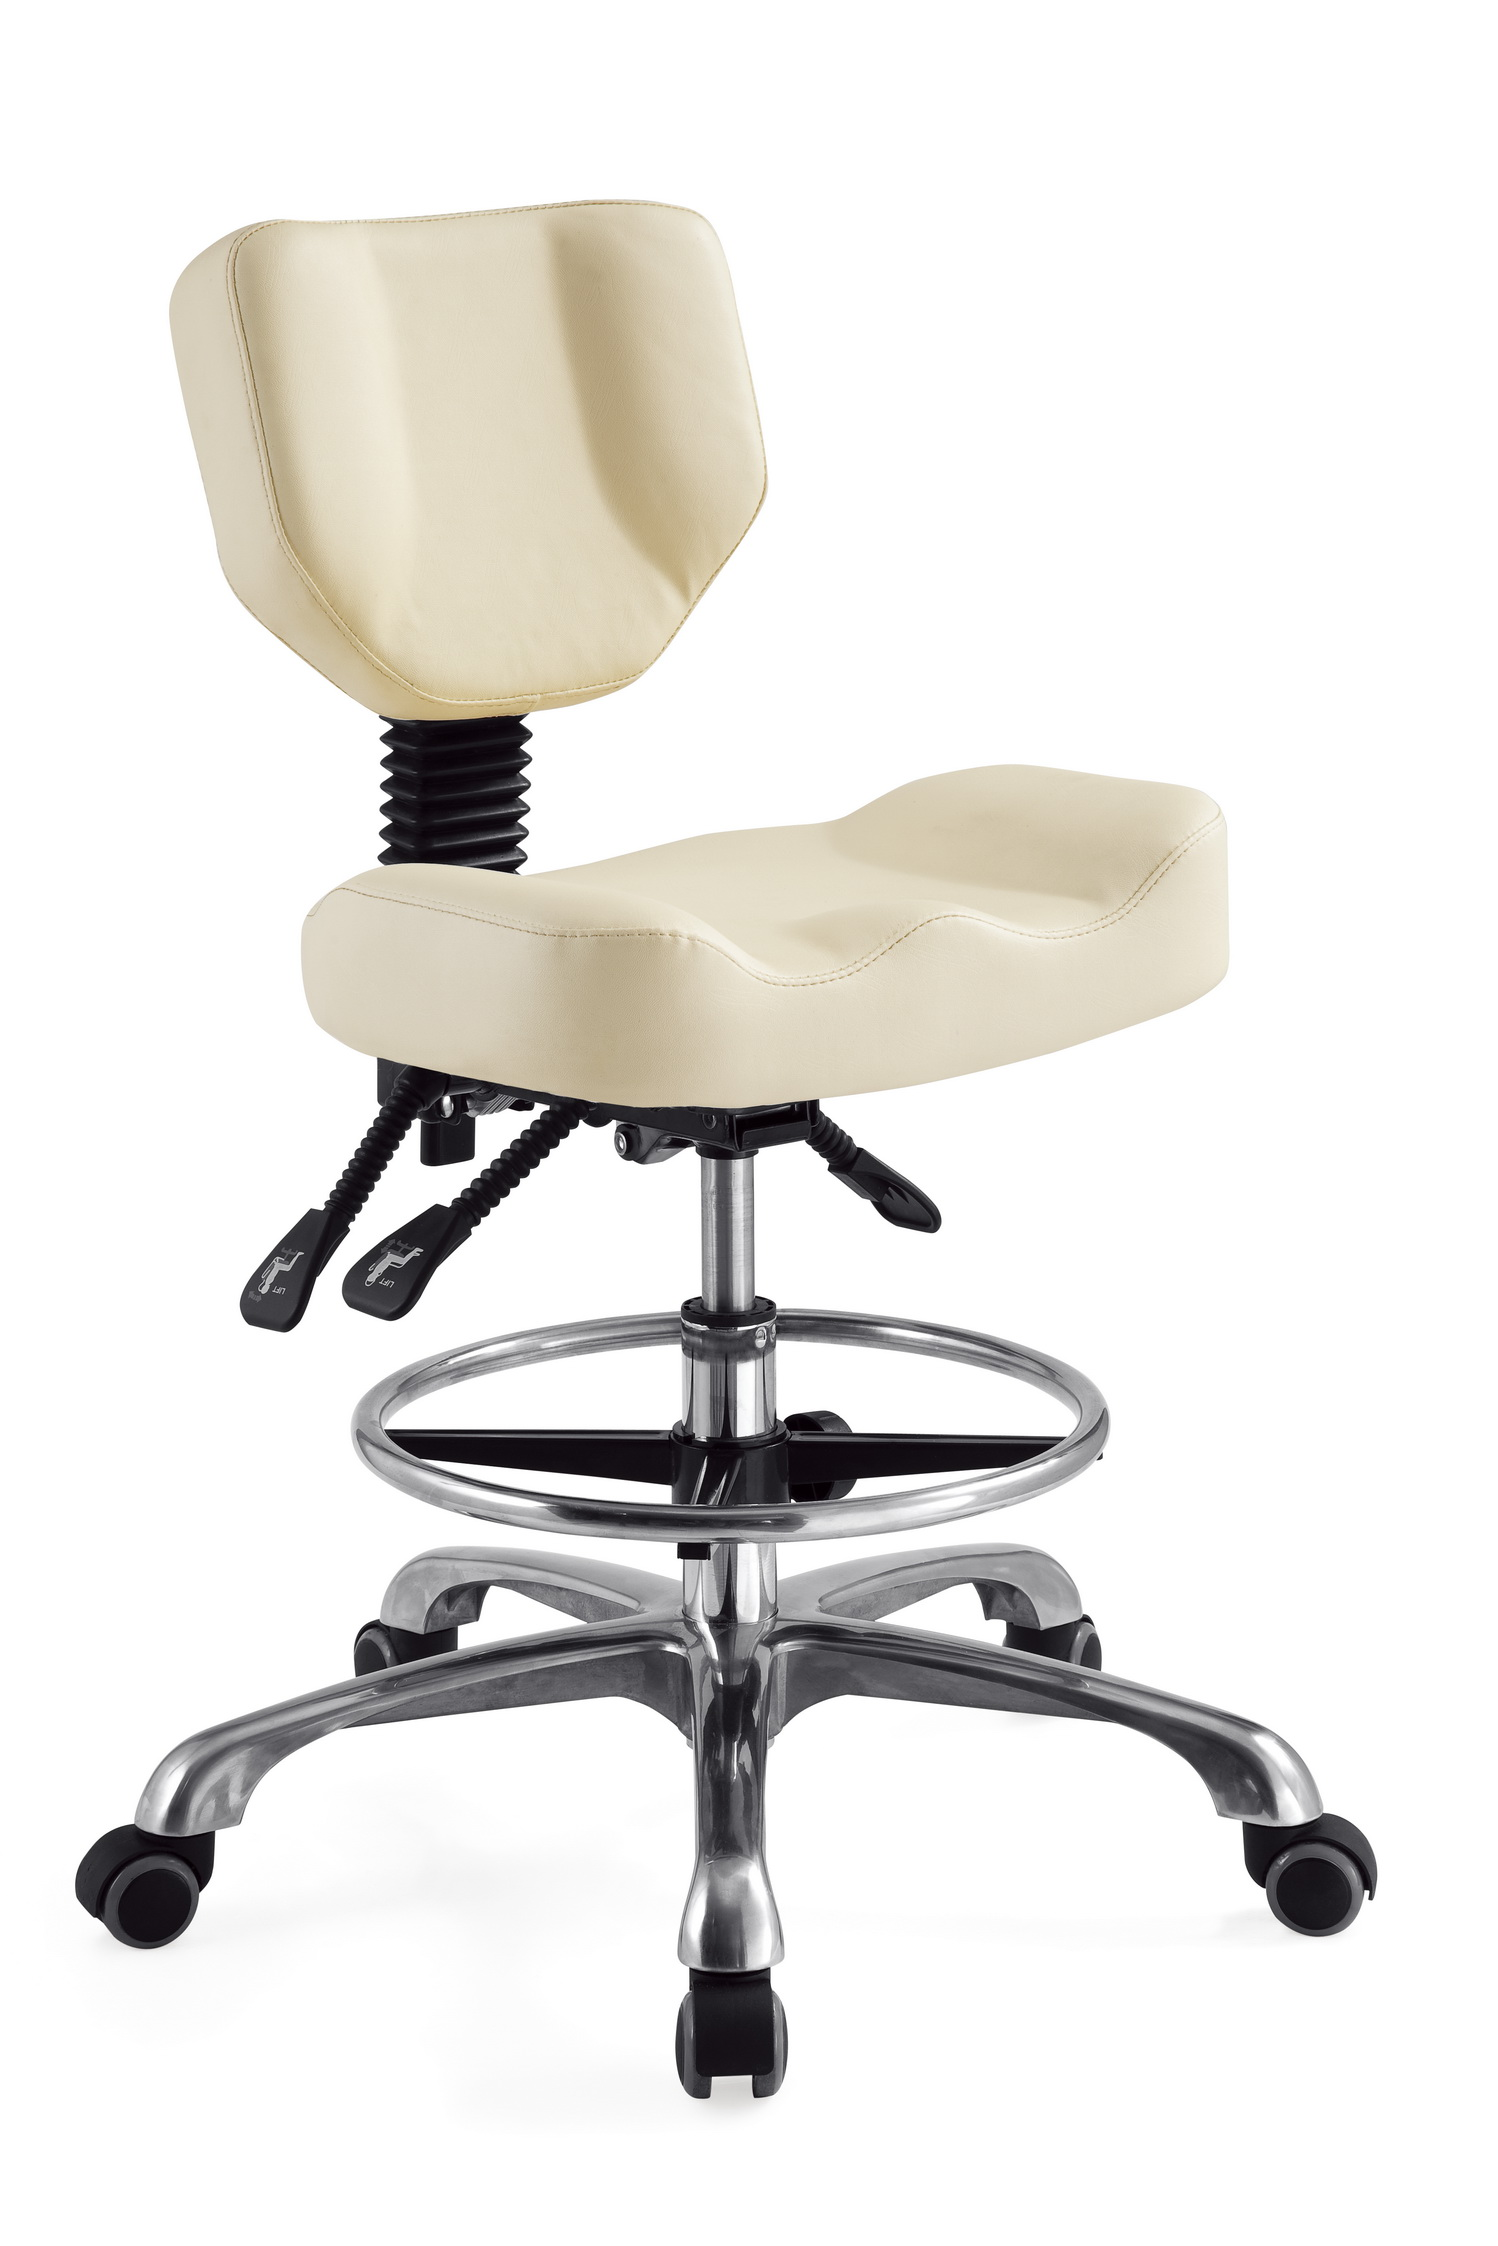 Pedicure technician chair spa salon pedicure chair latest nail technician chairs